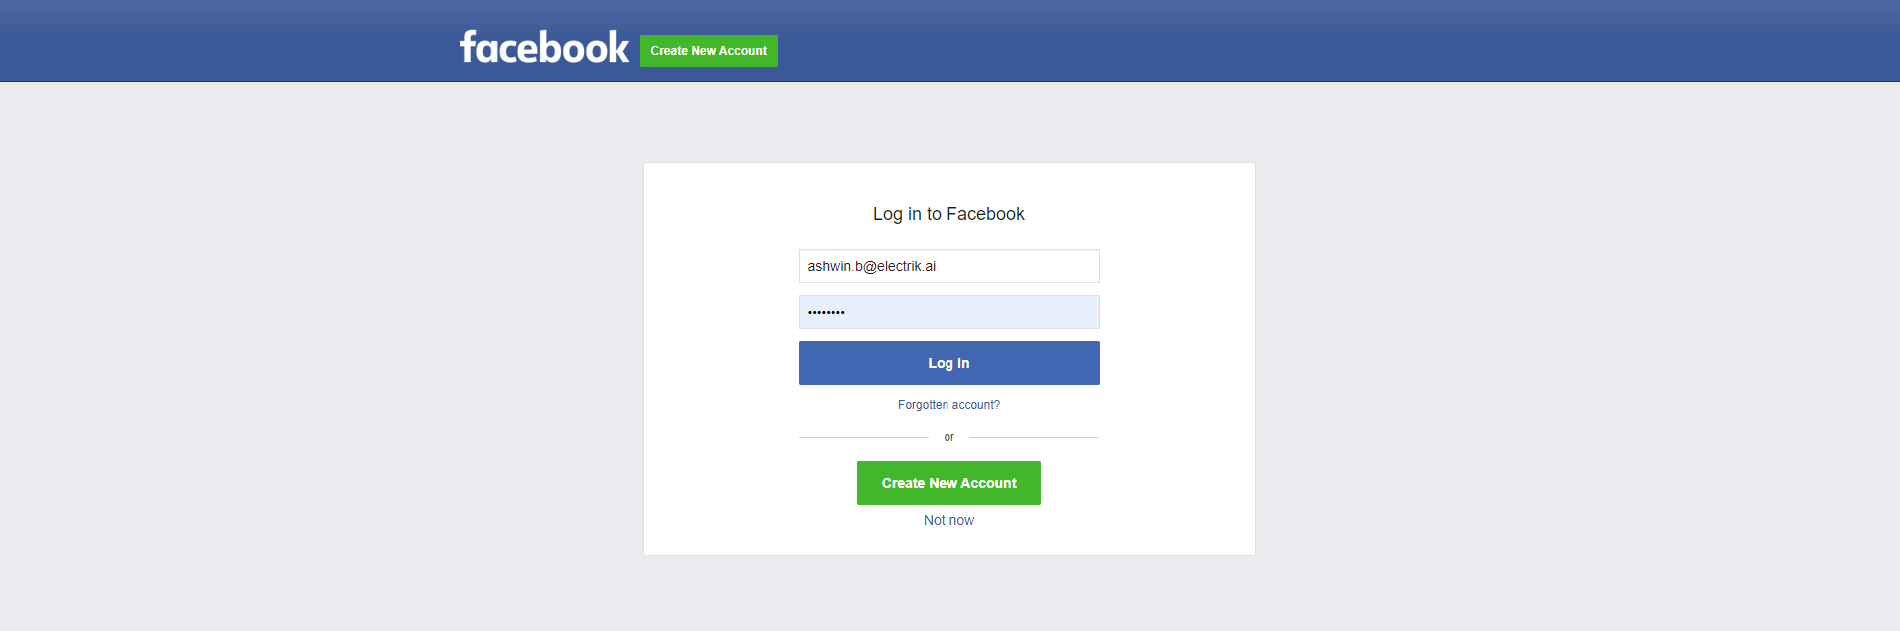 Step 7 Provide your Facebook Ads account User Id and Password-ElectrikAI